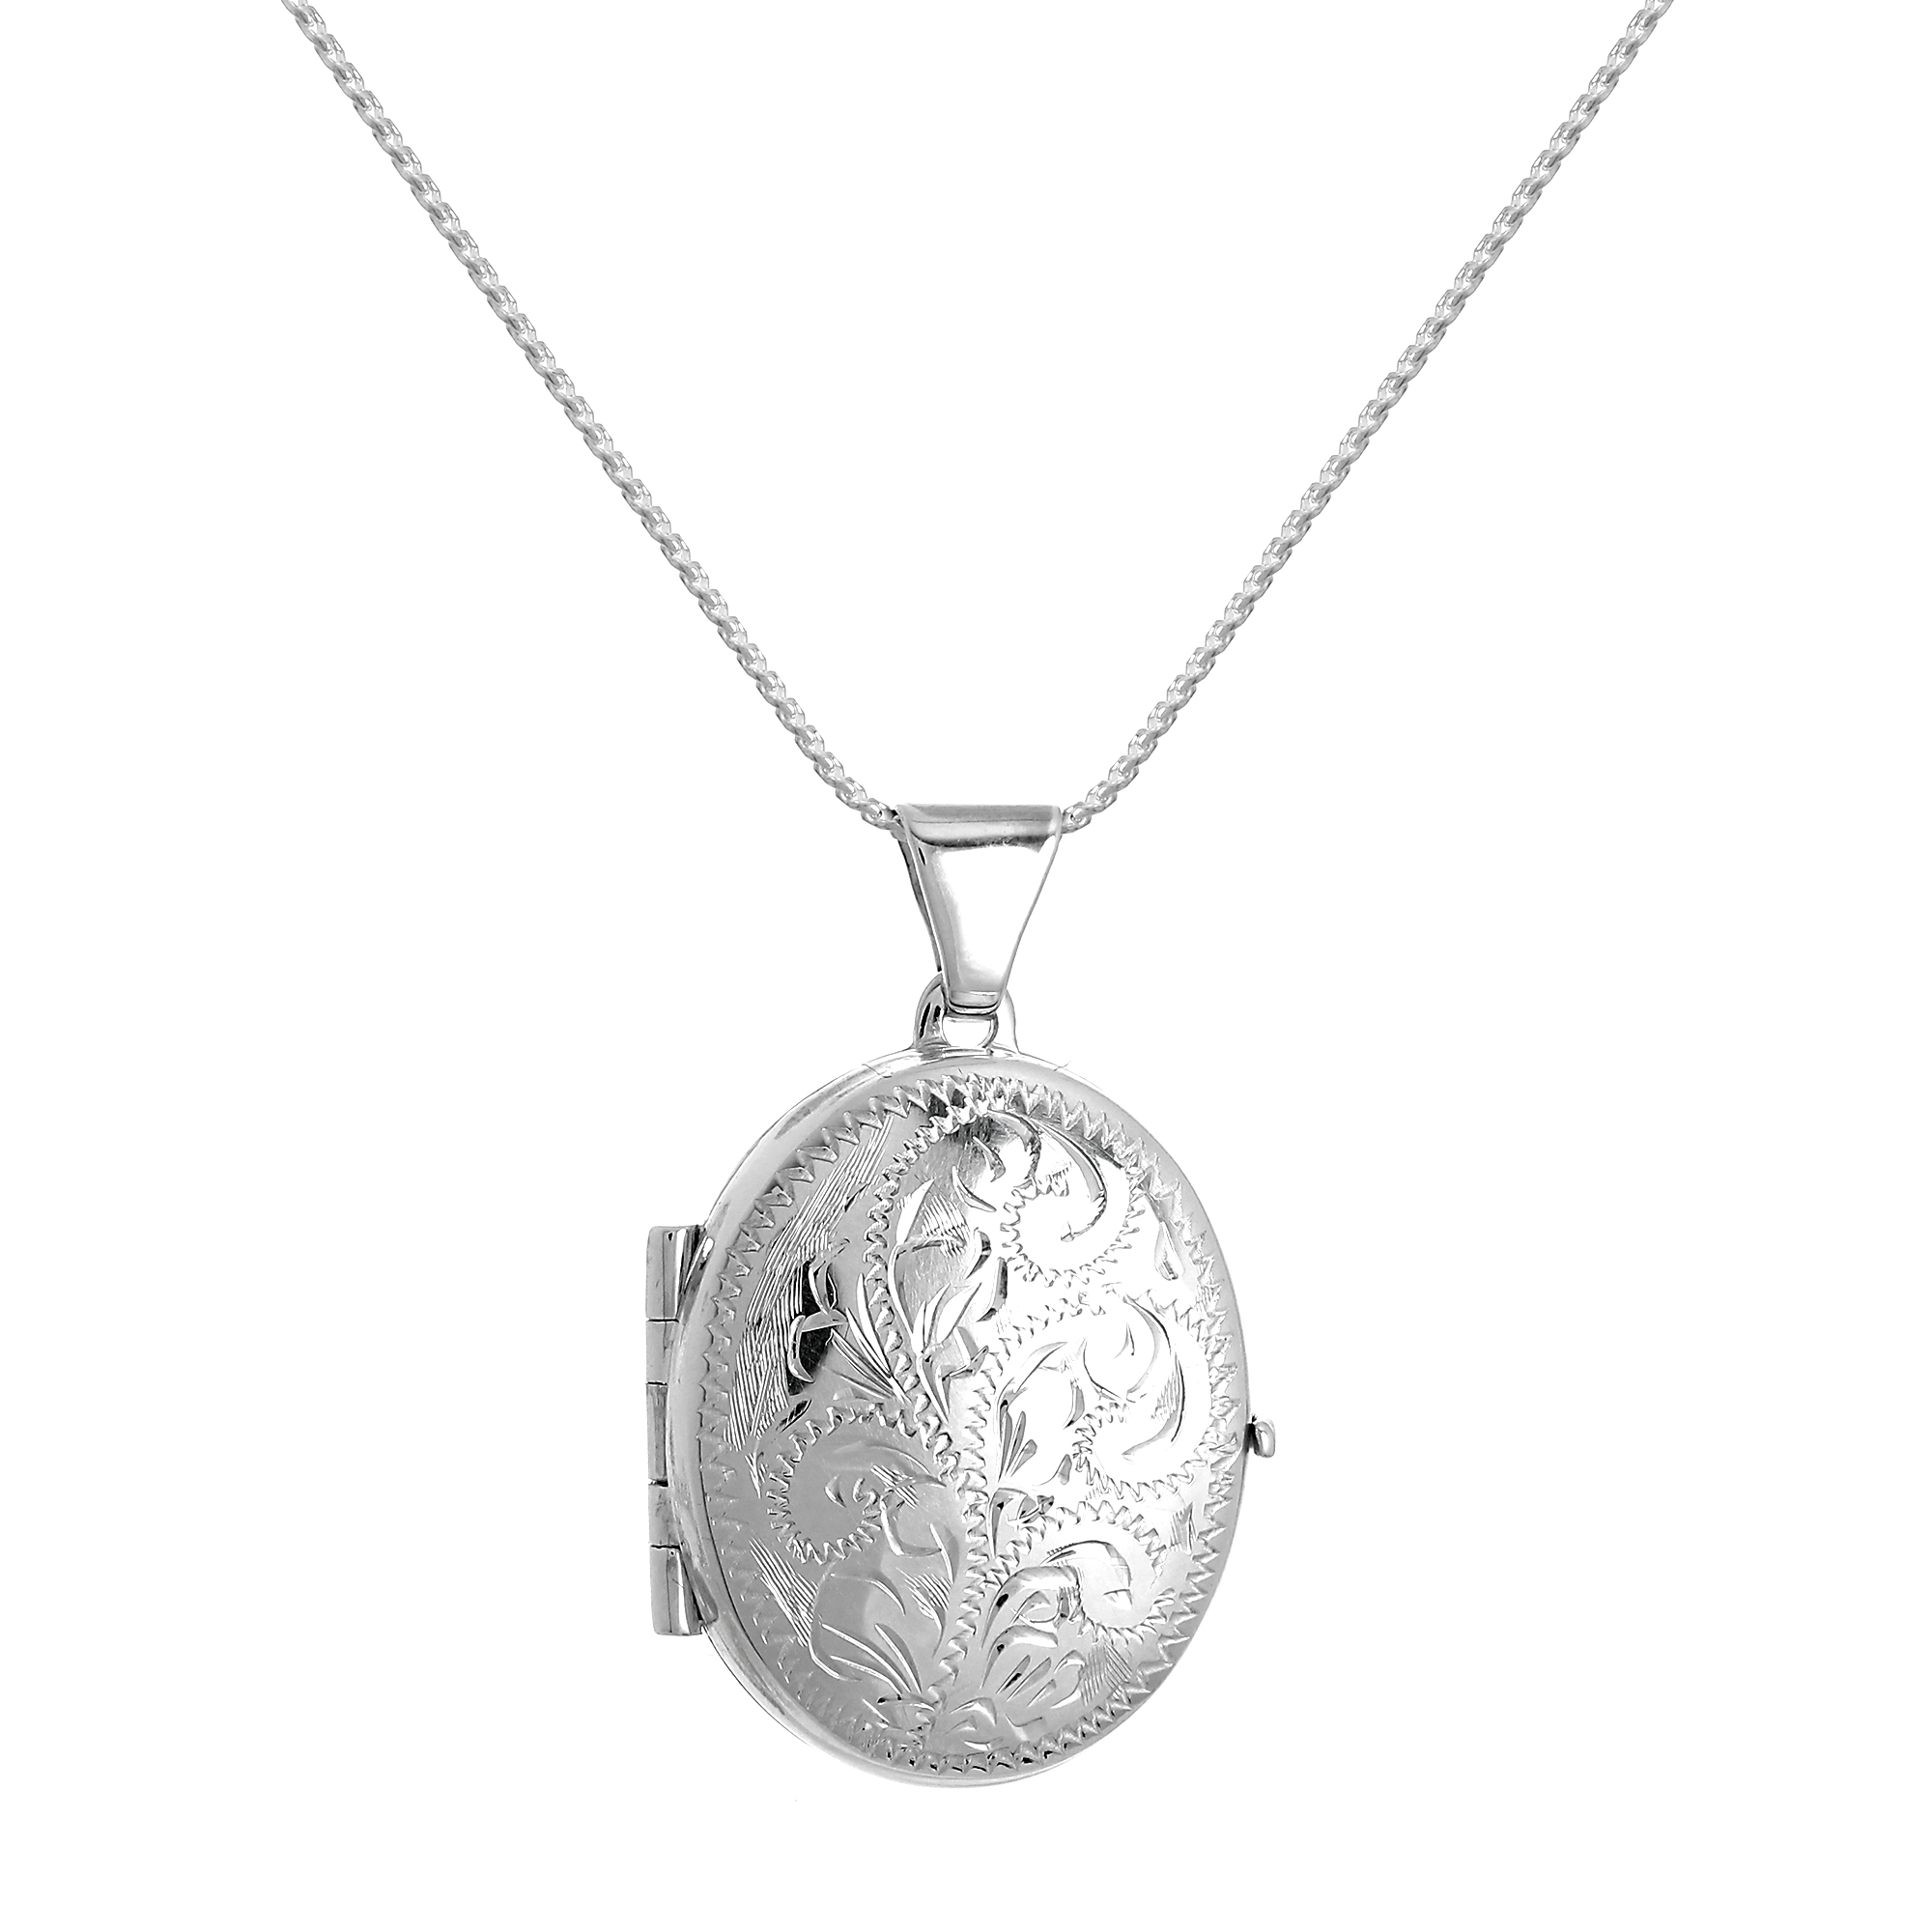 An image of Sterling Silver Engraved Oval 4 Photo Family Locket on 24 Inch Chain